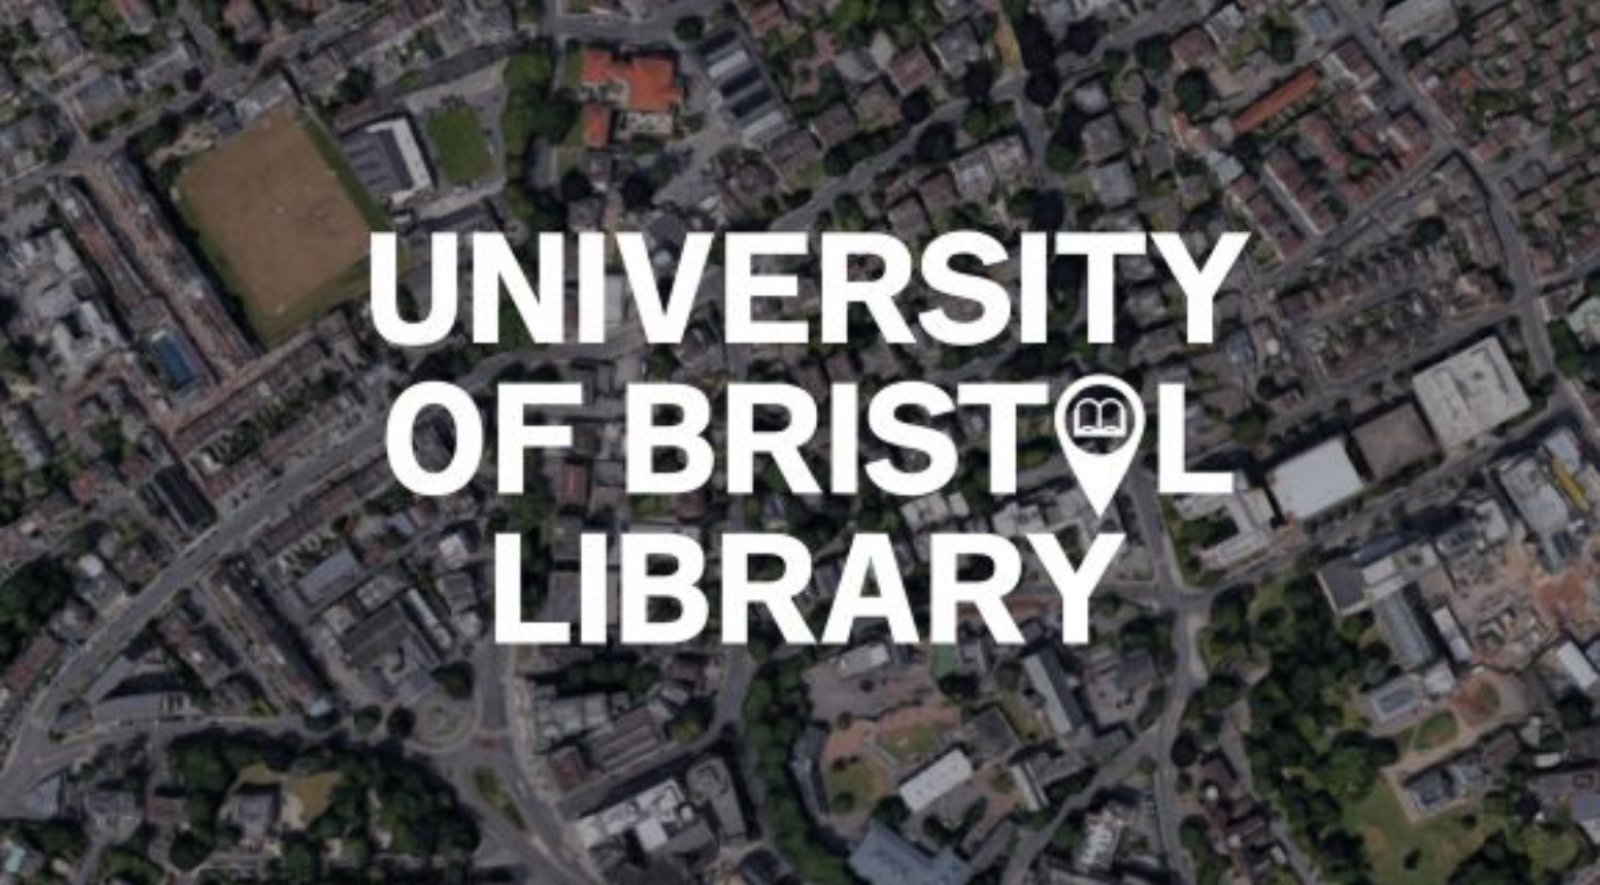 University of Bristol Library